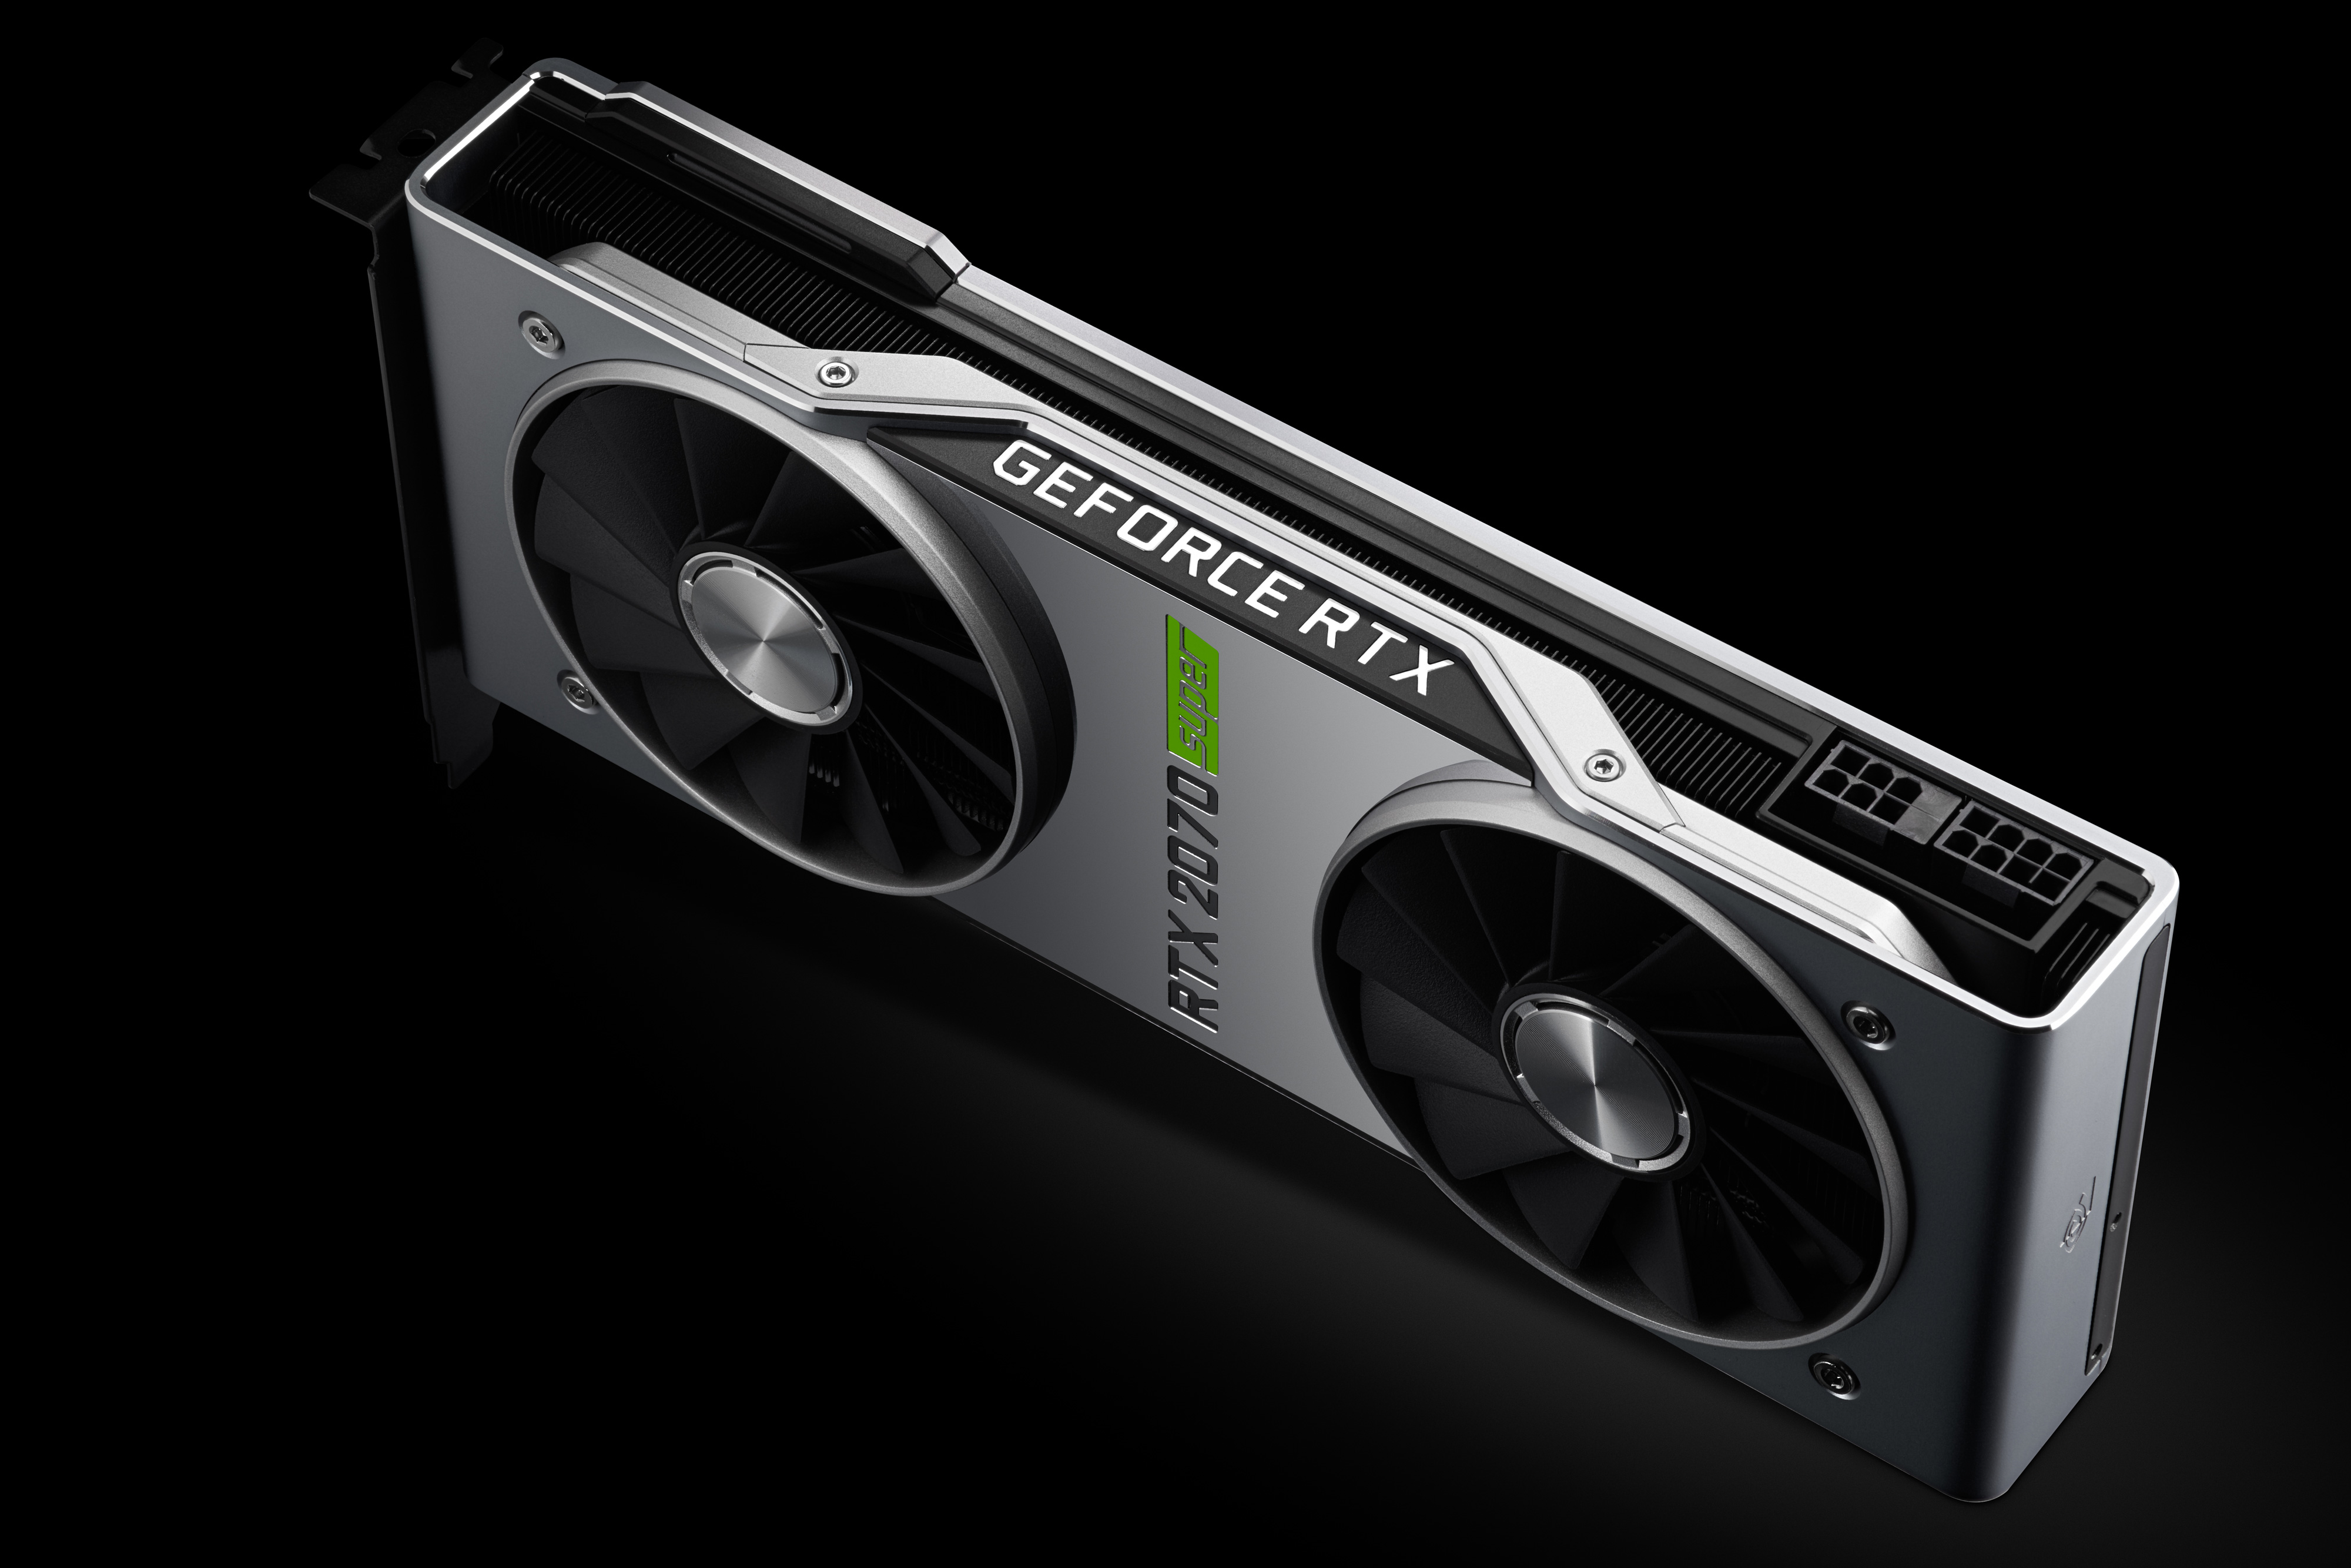 Meet the GeForce RTX 2070 Super & RTX 2060 Super - The